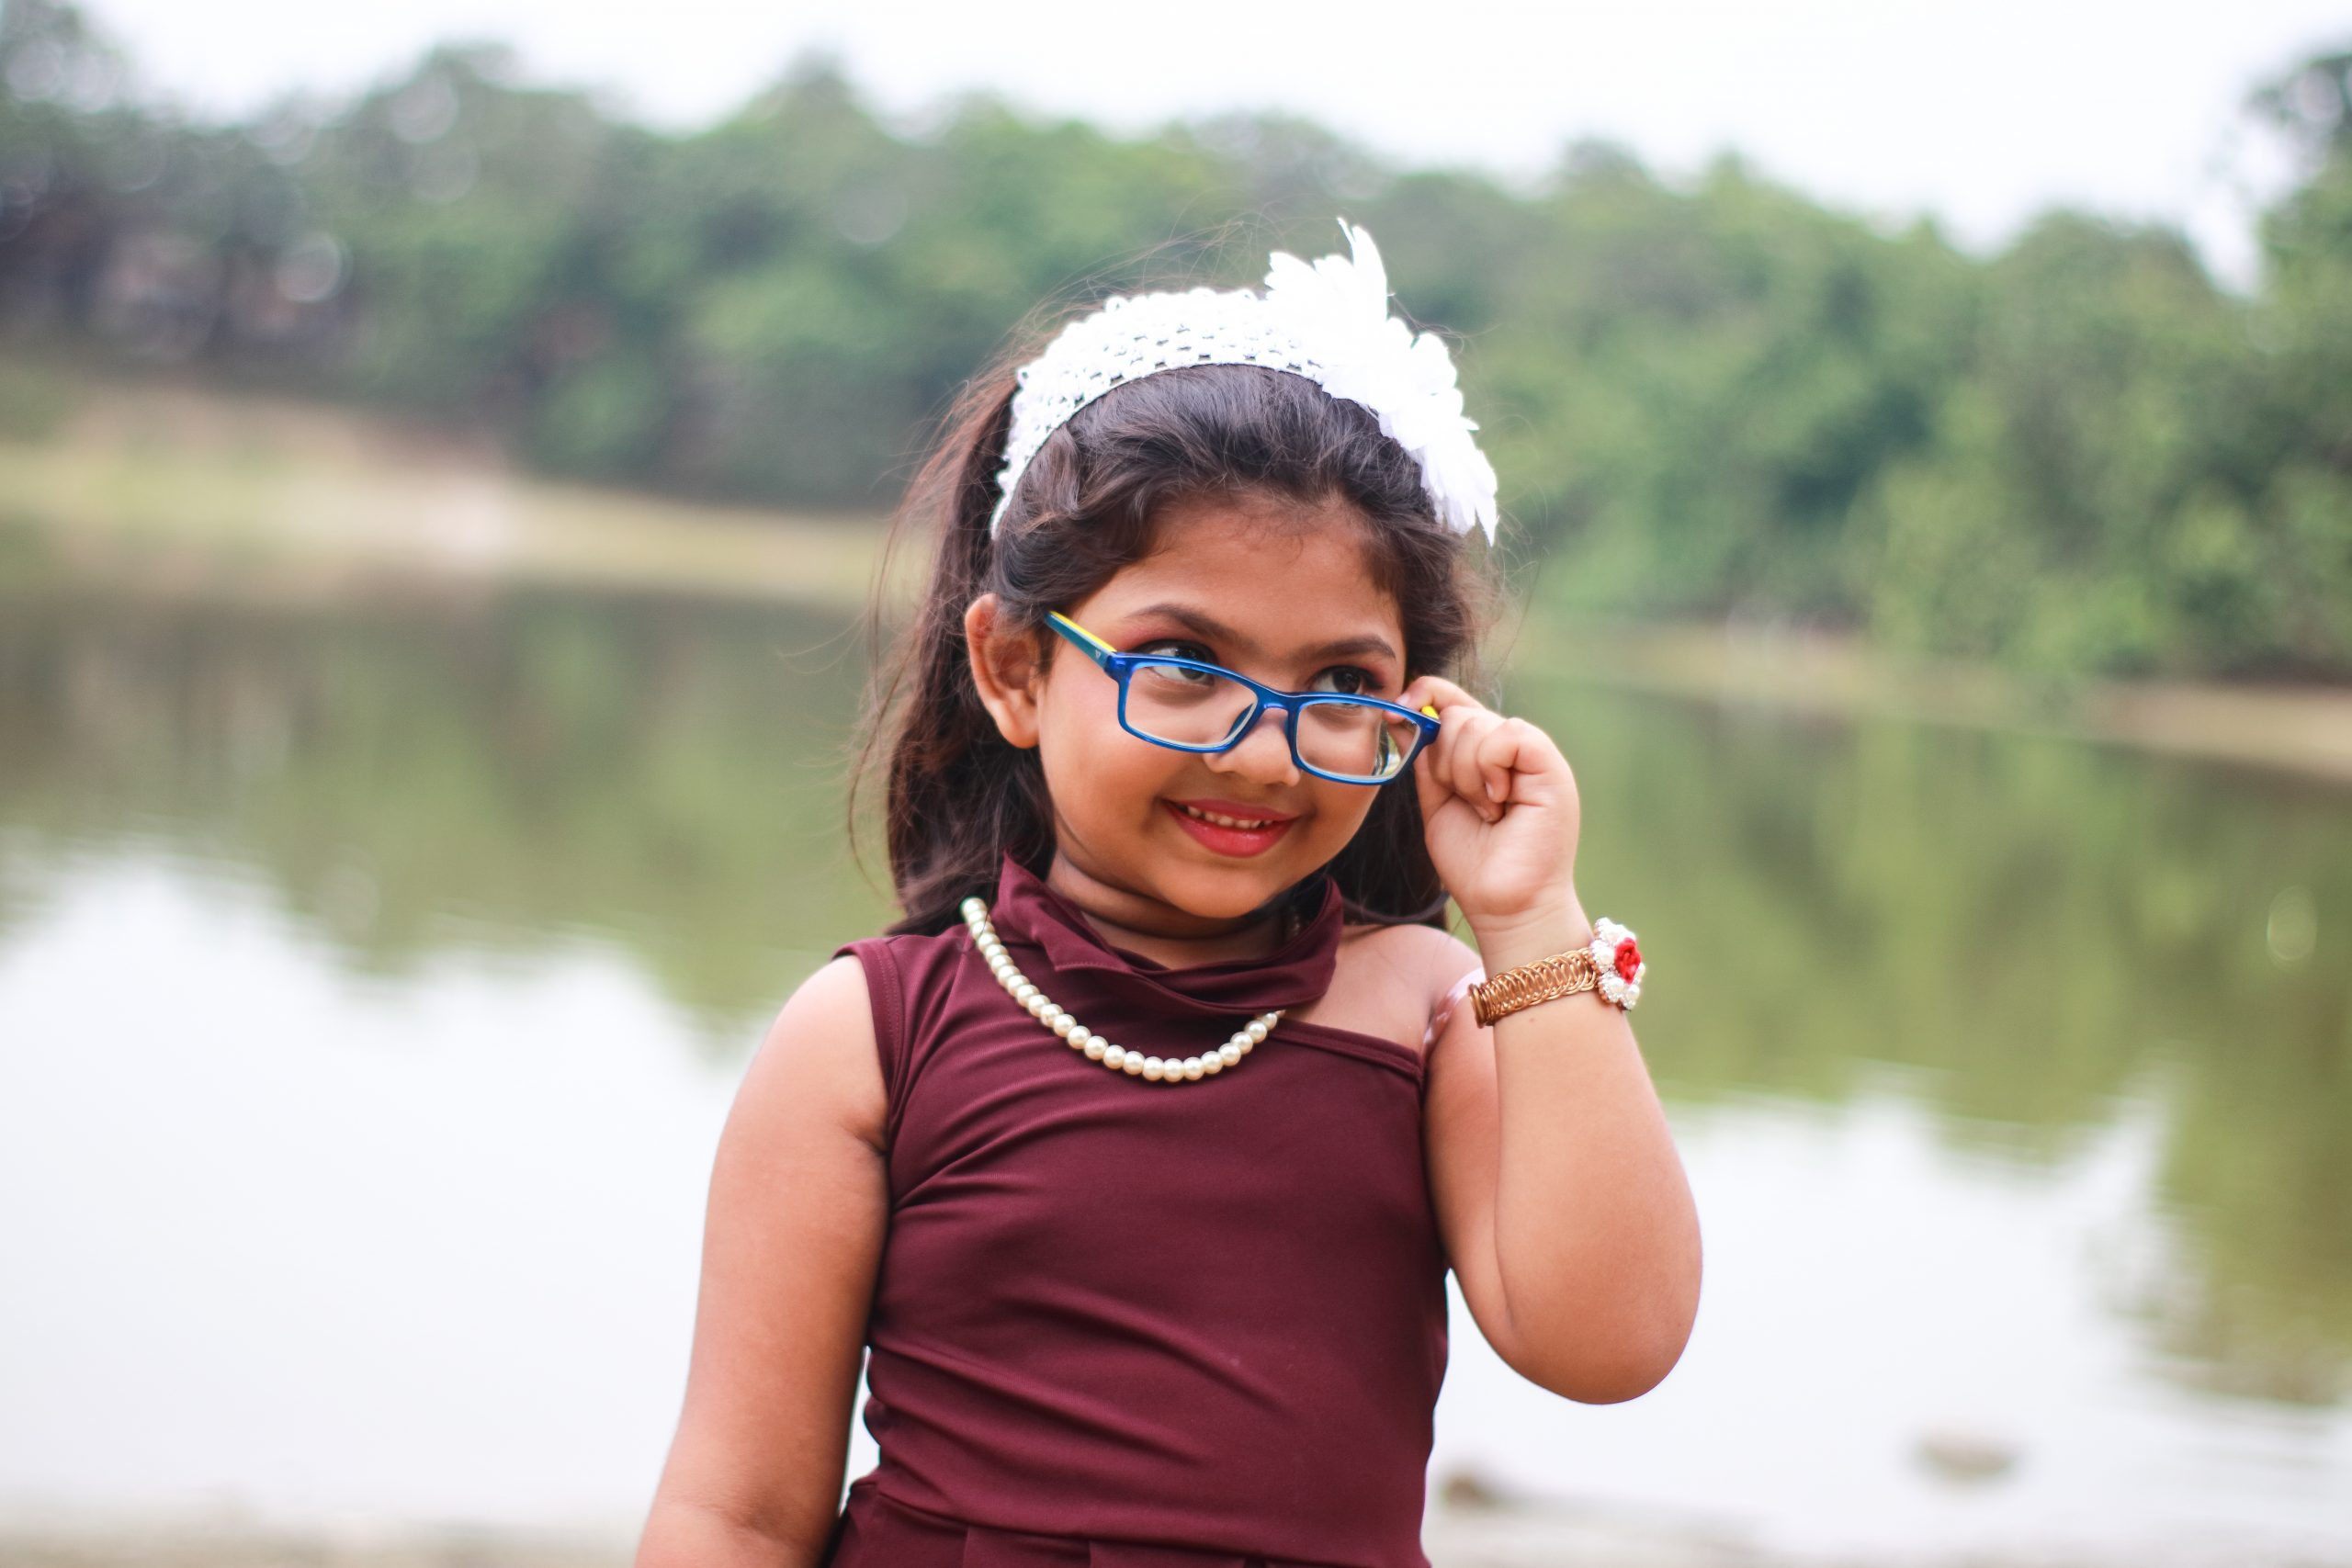 Little kid posing with specs